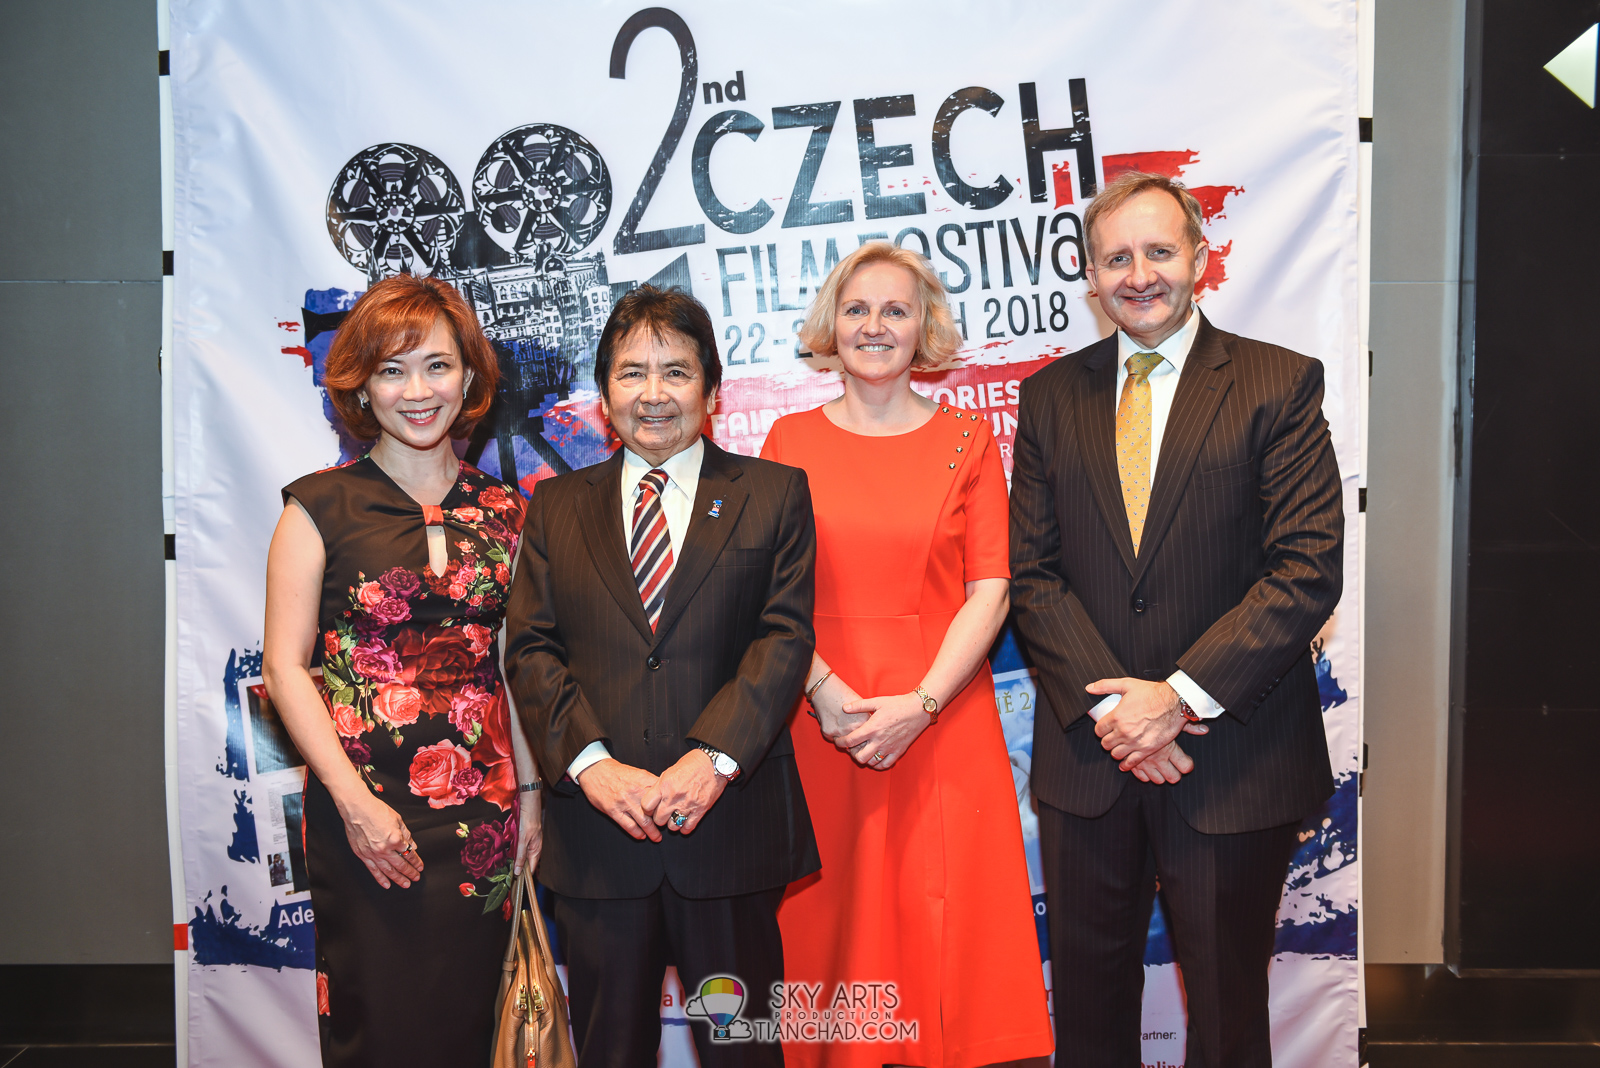 【Photo】Czech Republic Film Festival 2018 Malaysia Launch @ GSC Pavilion KL  #CRFF2018